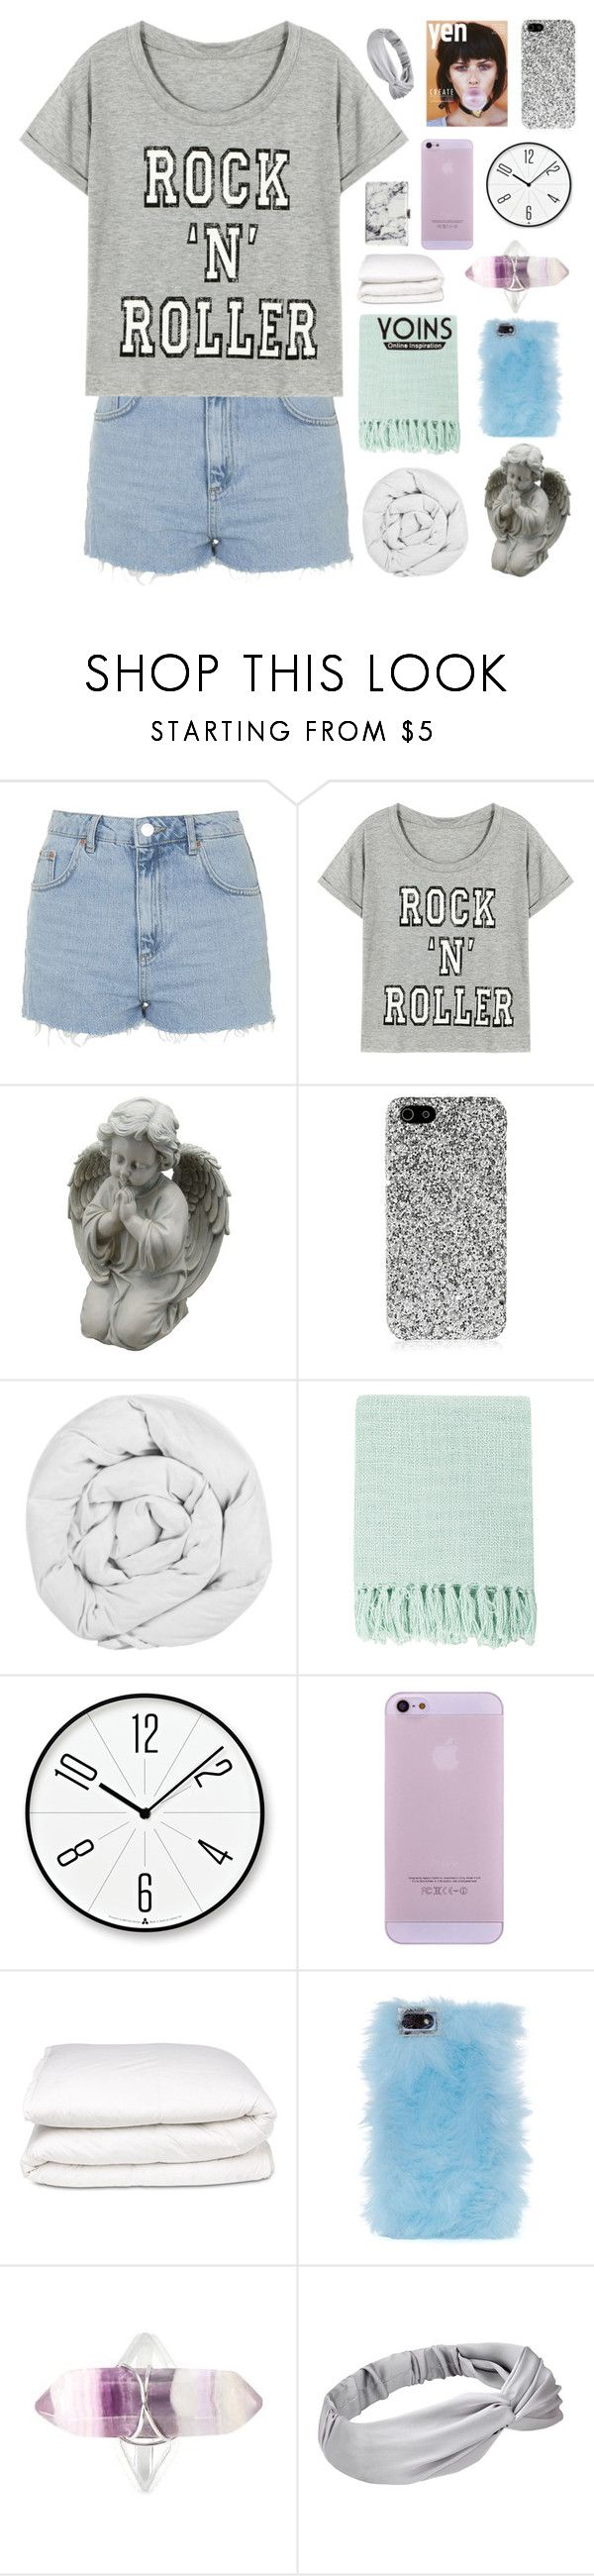 """it's logical ✧ yoins 23"" by dont-go-to-sleep ❤ liked on Polyvore featuring Topshop, Yves Saint Laurent, The Fine Bedding Company, Surya, Lemnos, Selfridges, Skinnydip, Balenciaga, vintage and women's clothing"